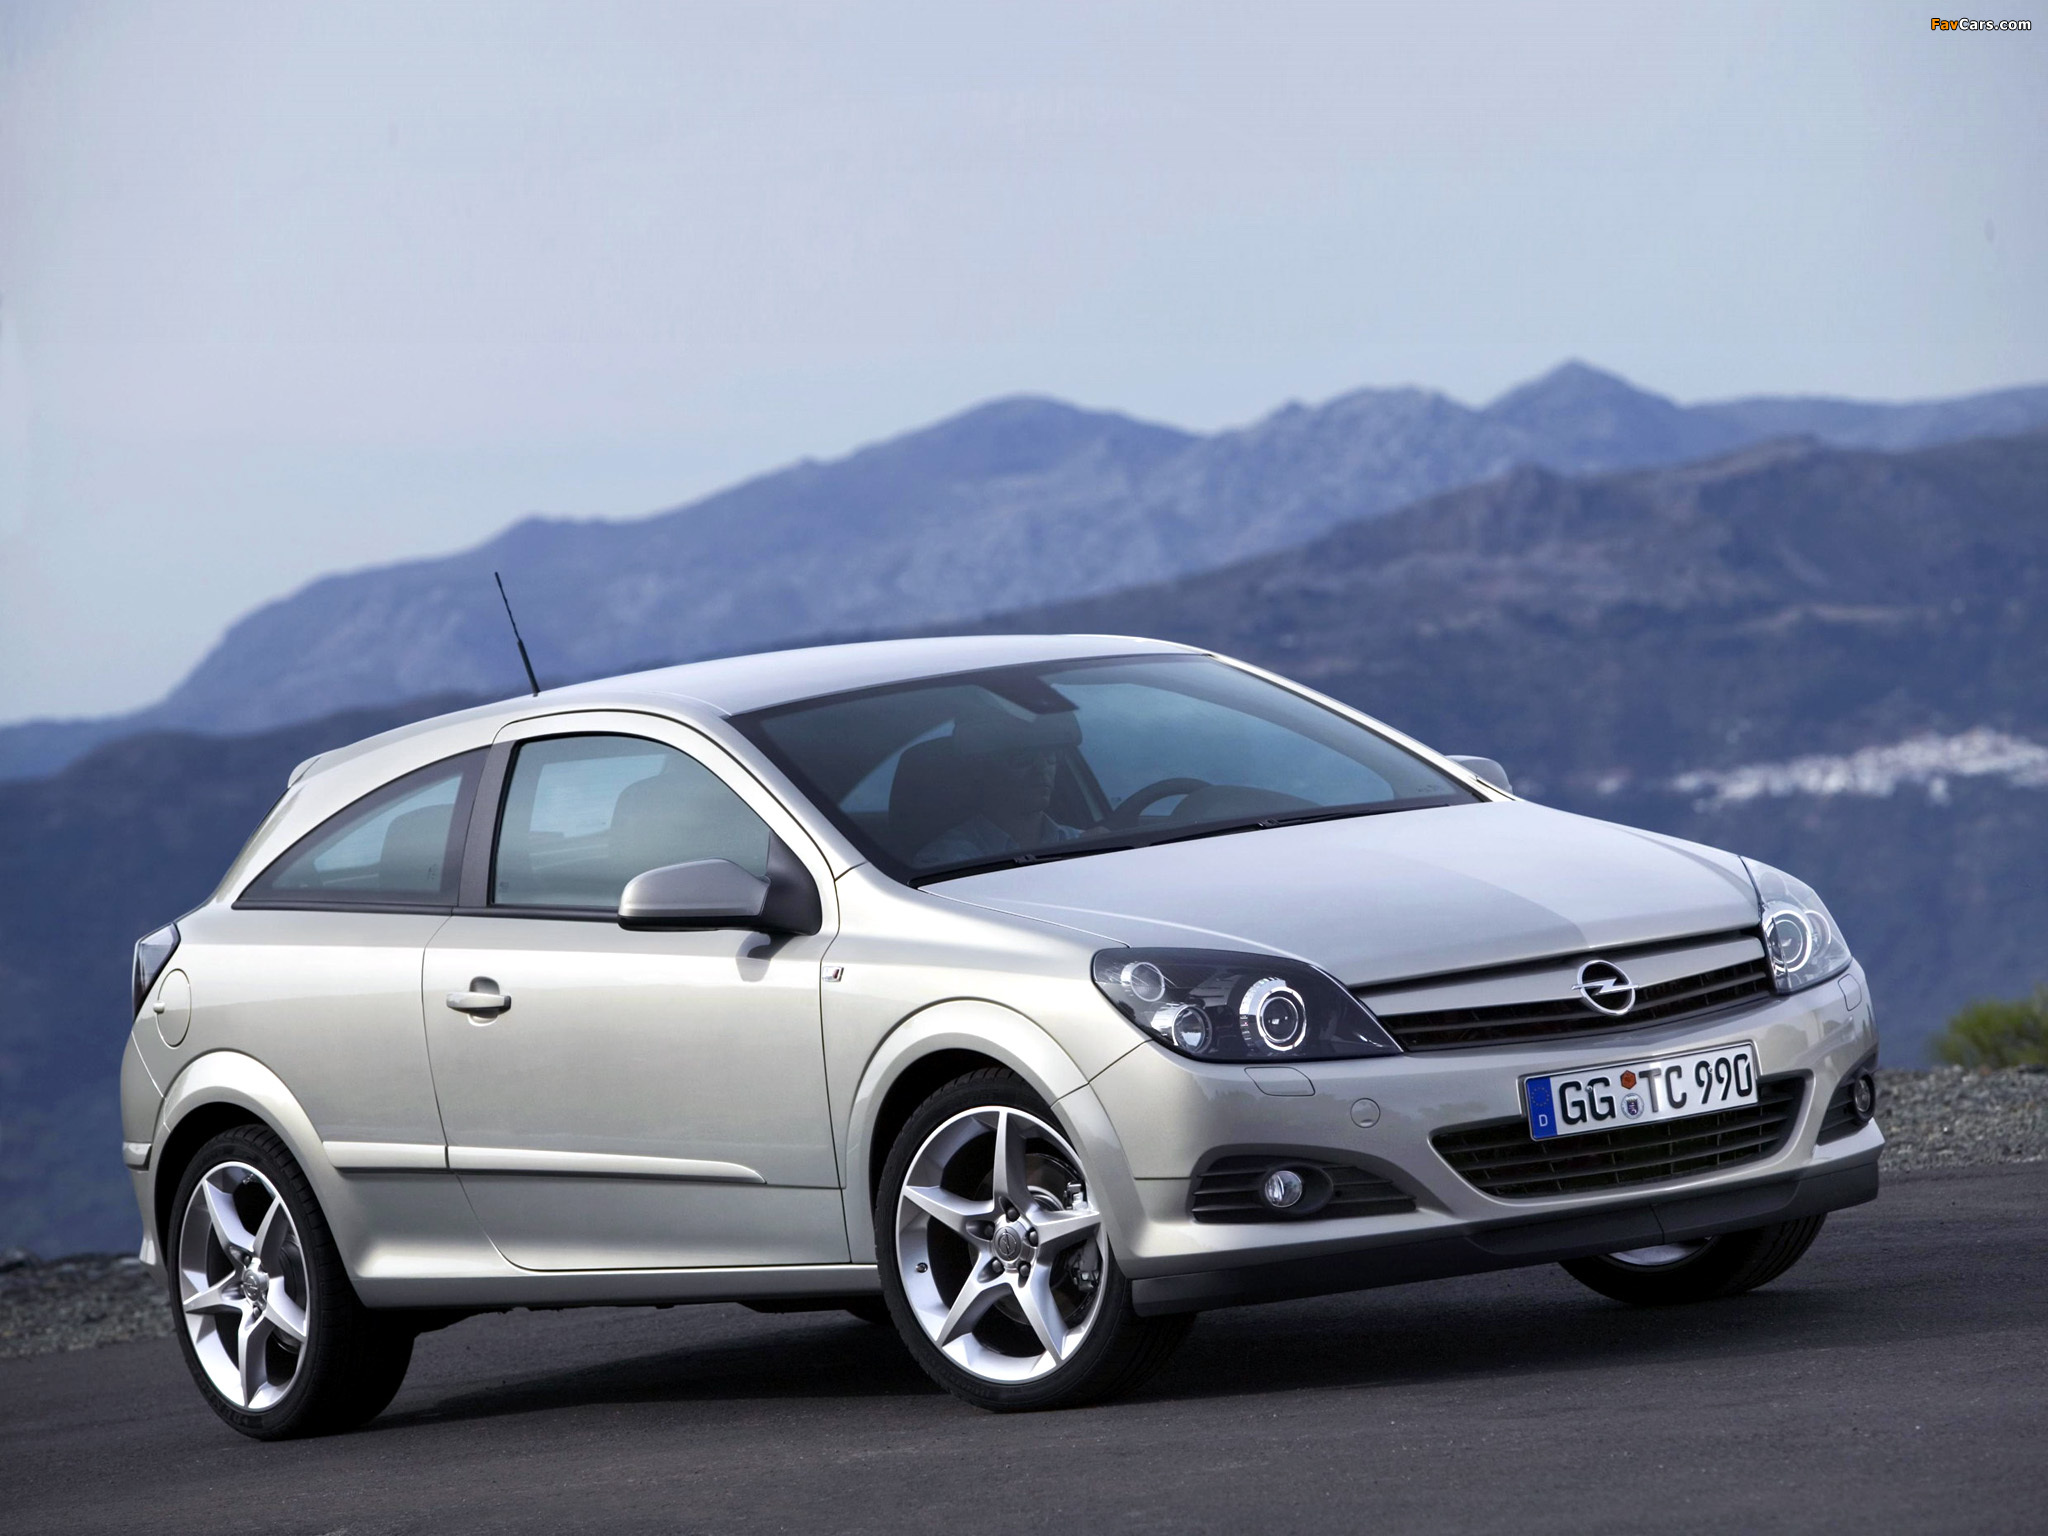 2005 Opel Astra GTC Coupe 3-door